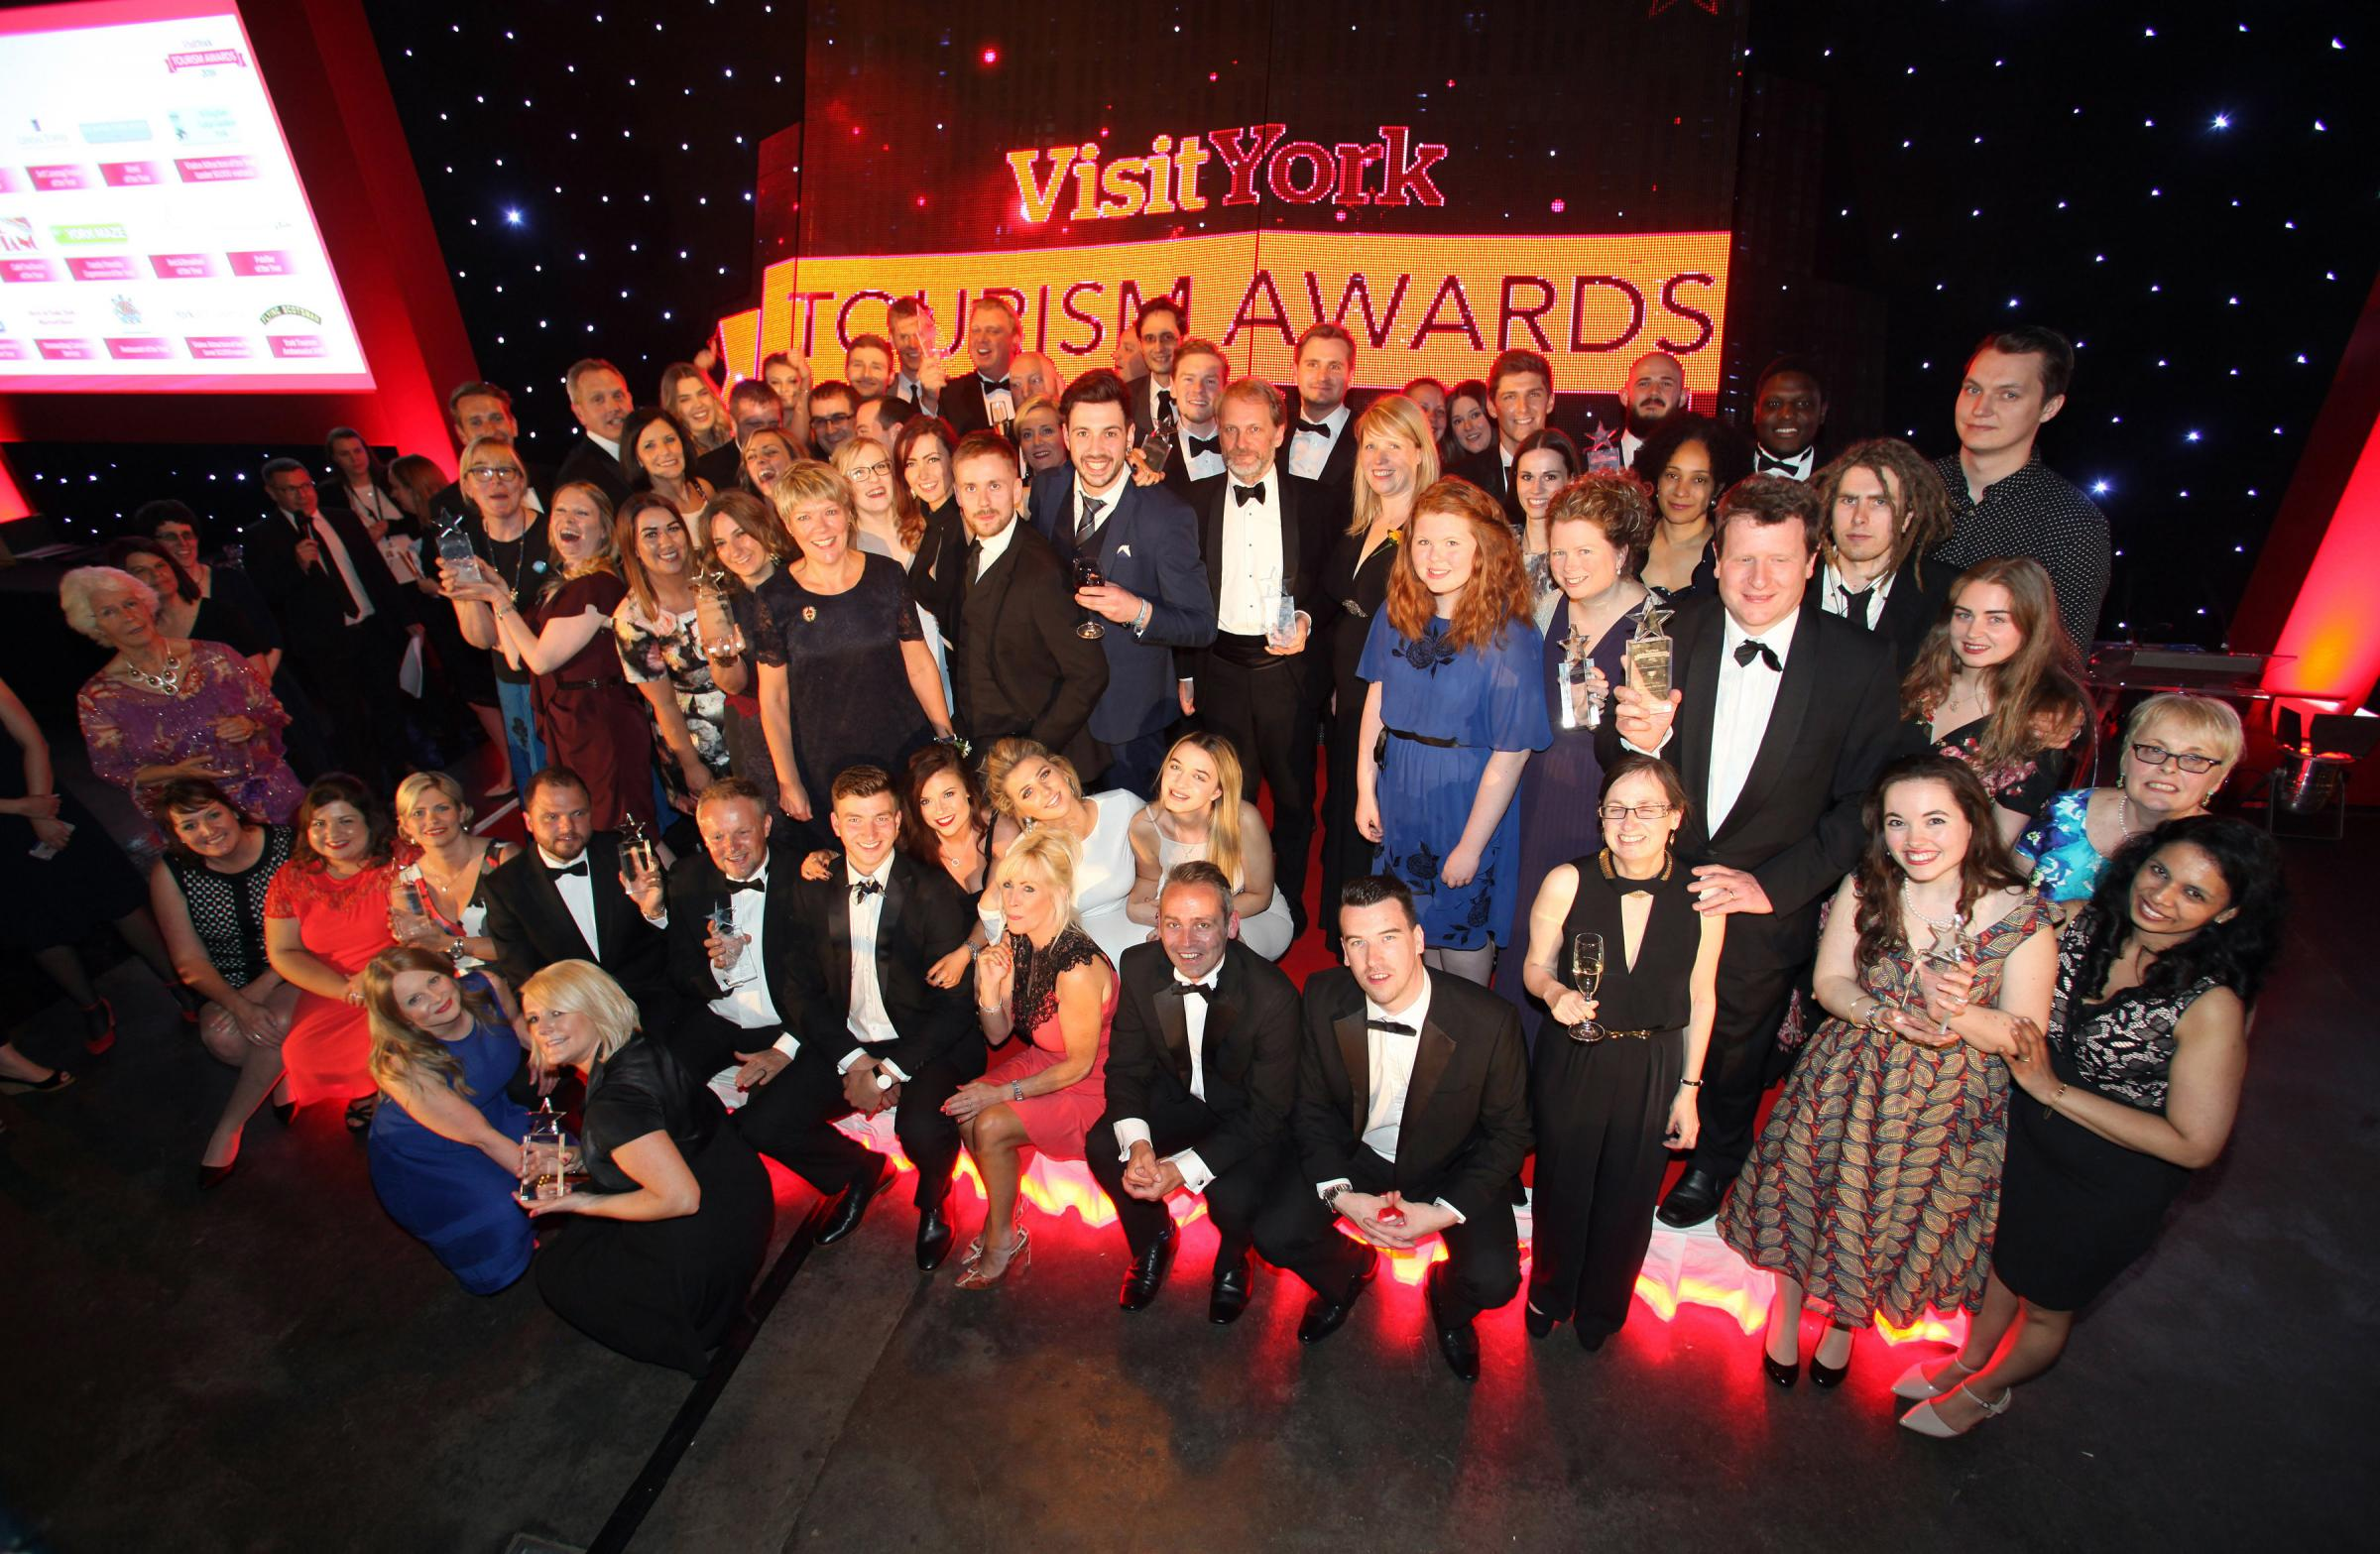 Award winners at the Visit York Tourism Awards